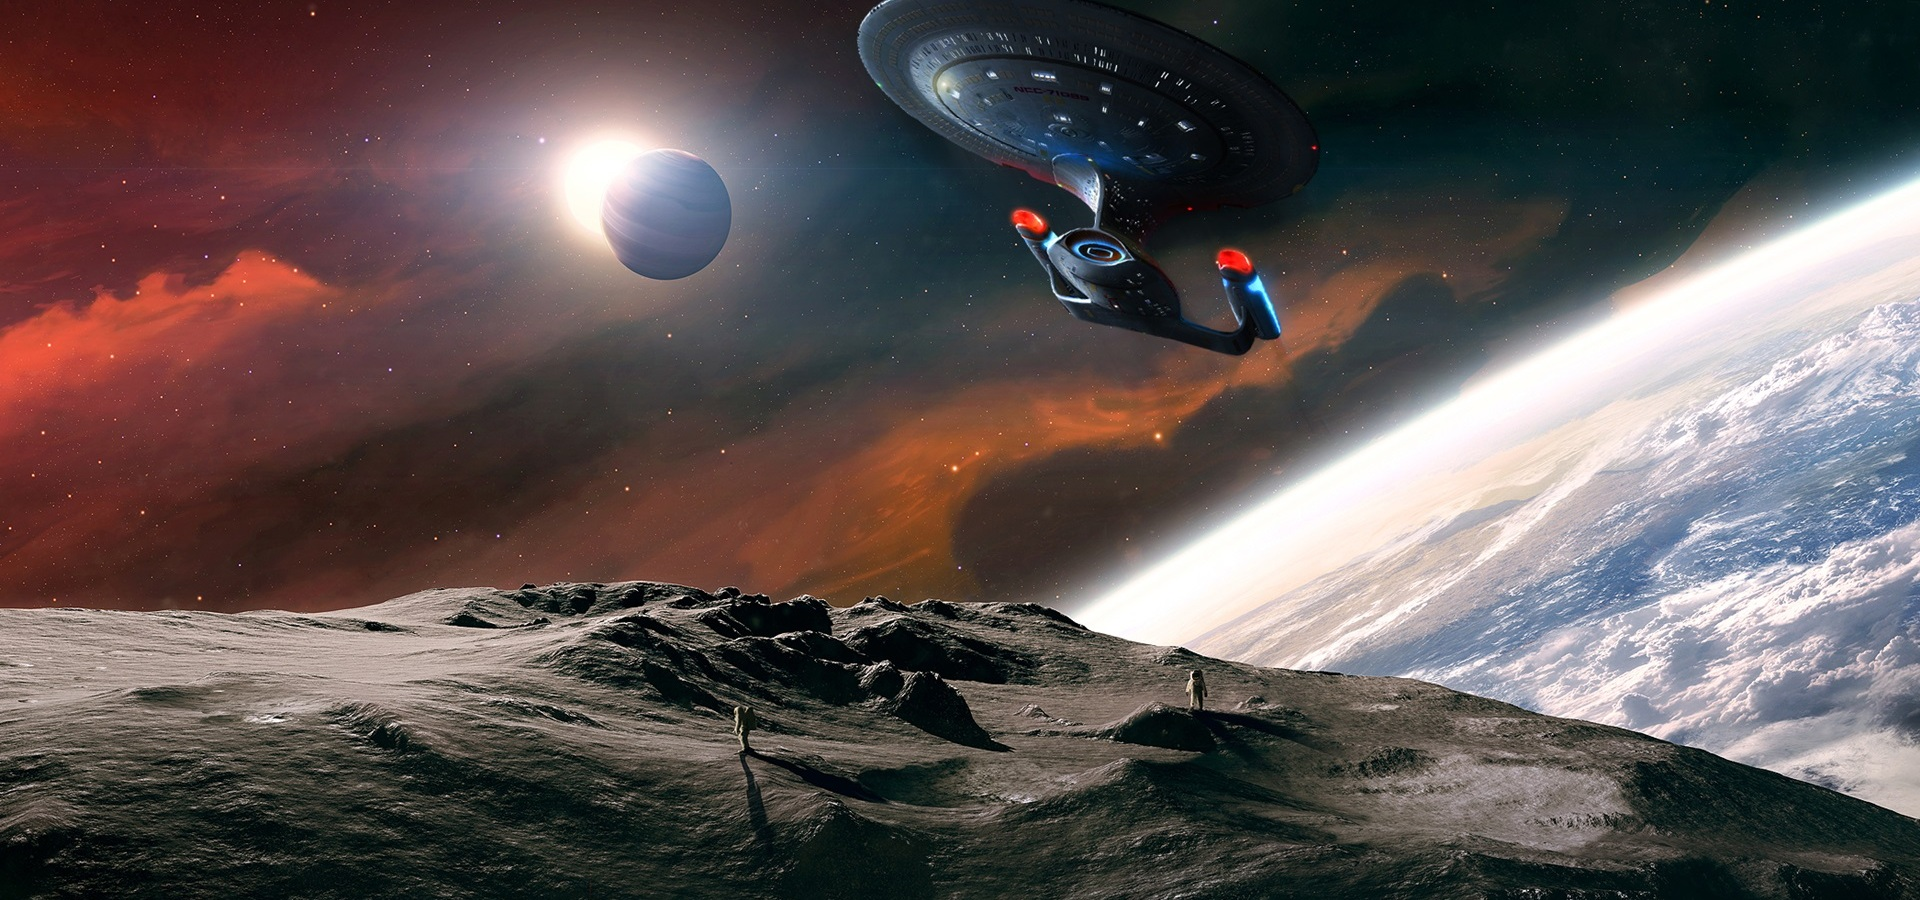 Art depiction of the Starship Enterprise against a background of planets.